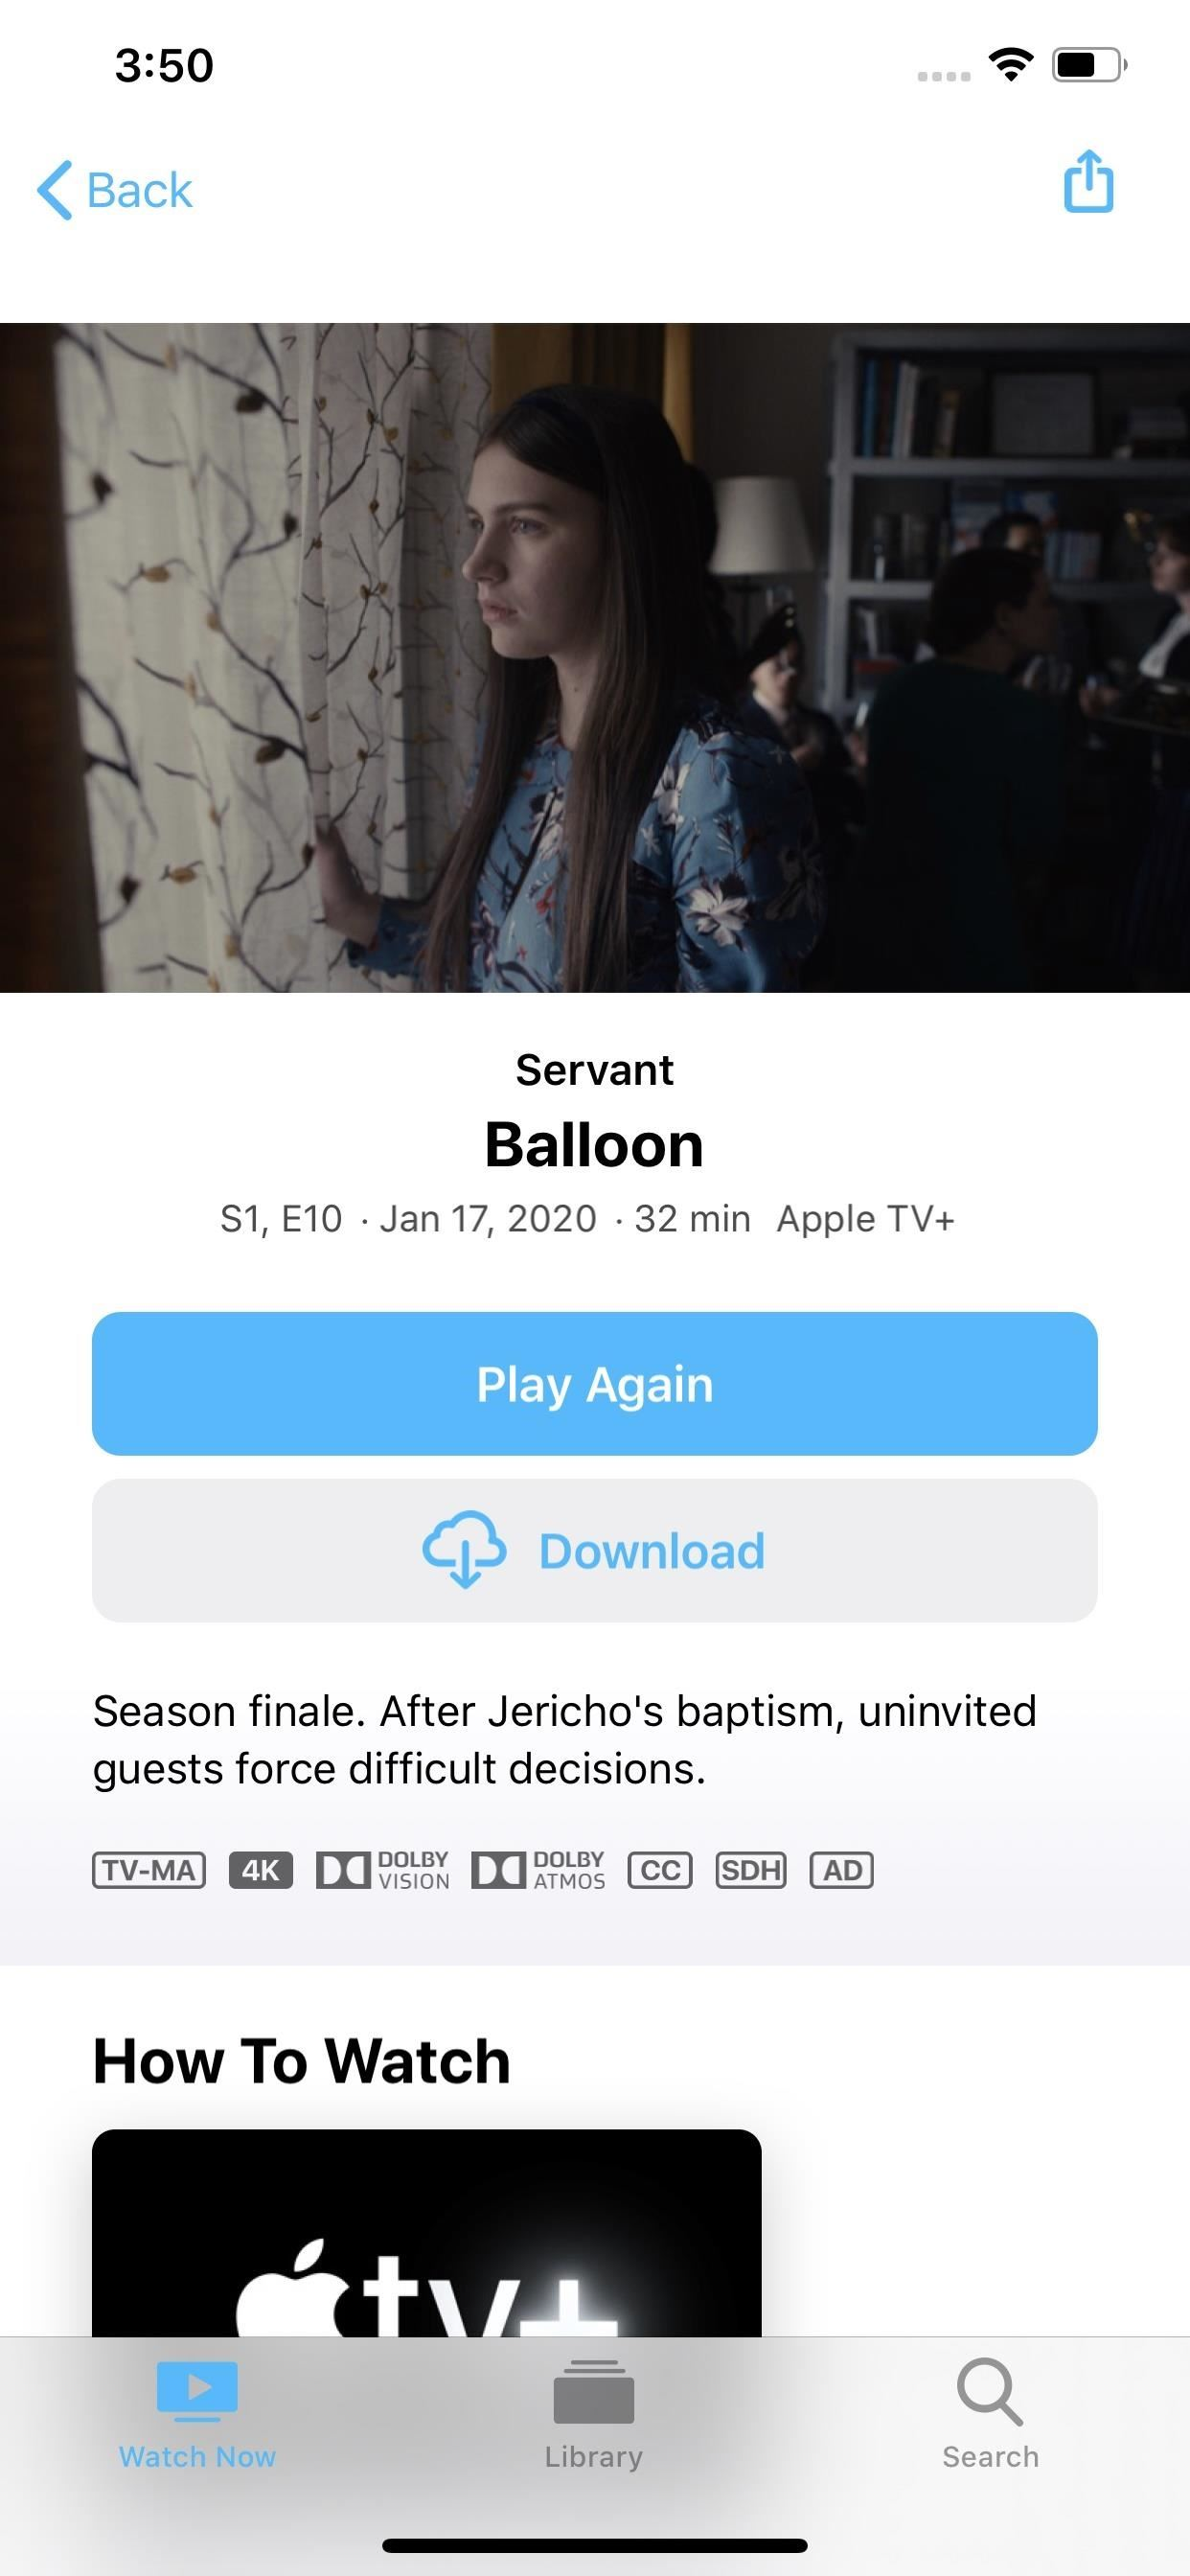 16 new functions and changes for iPhone in iOS 13.4